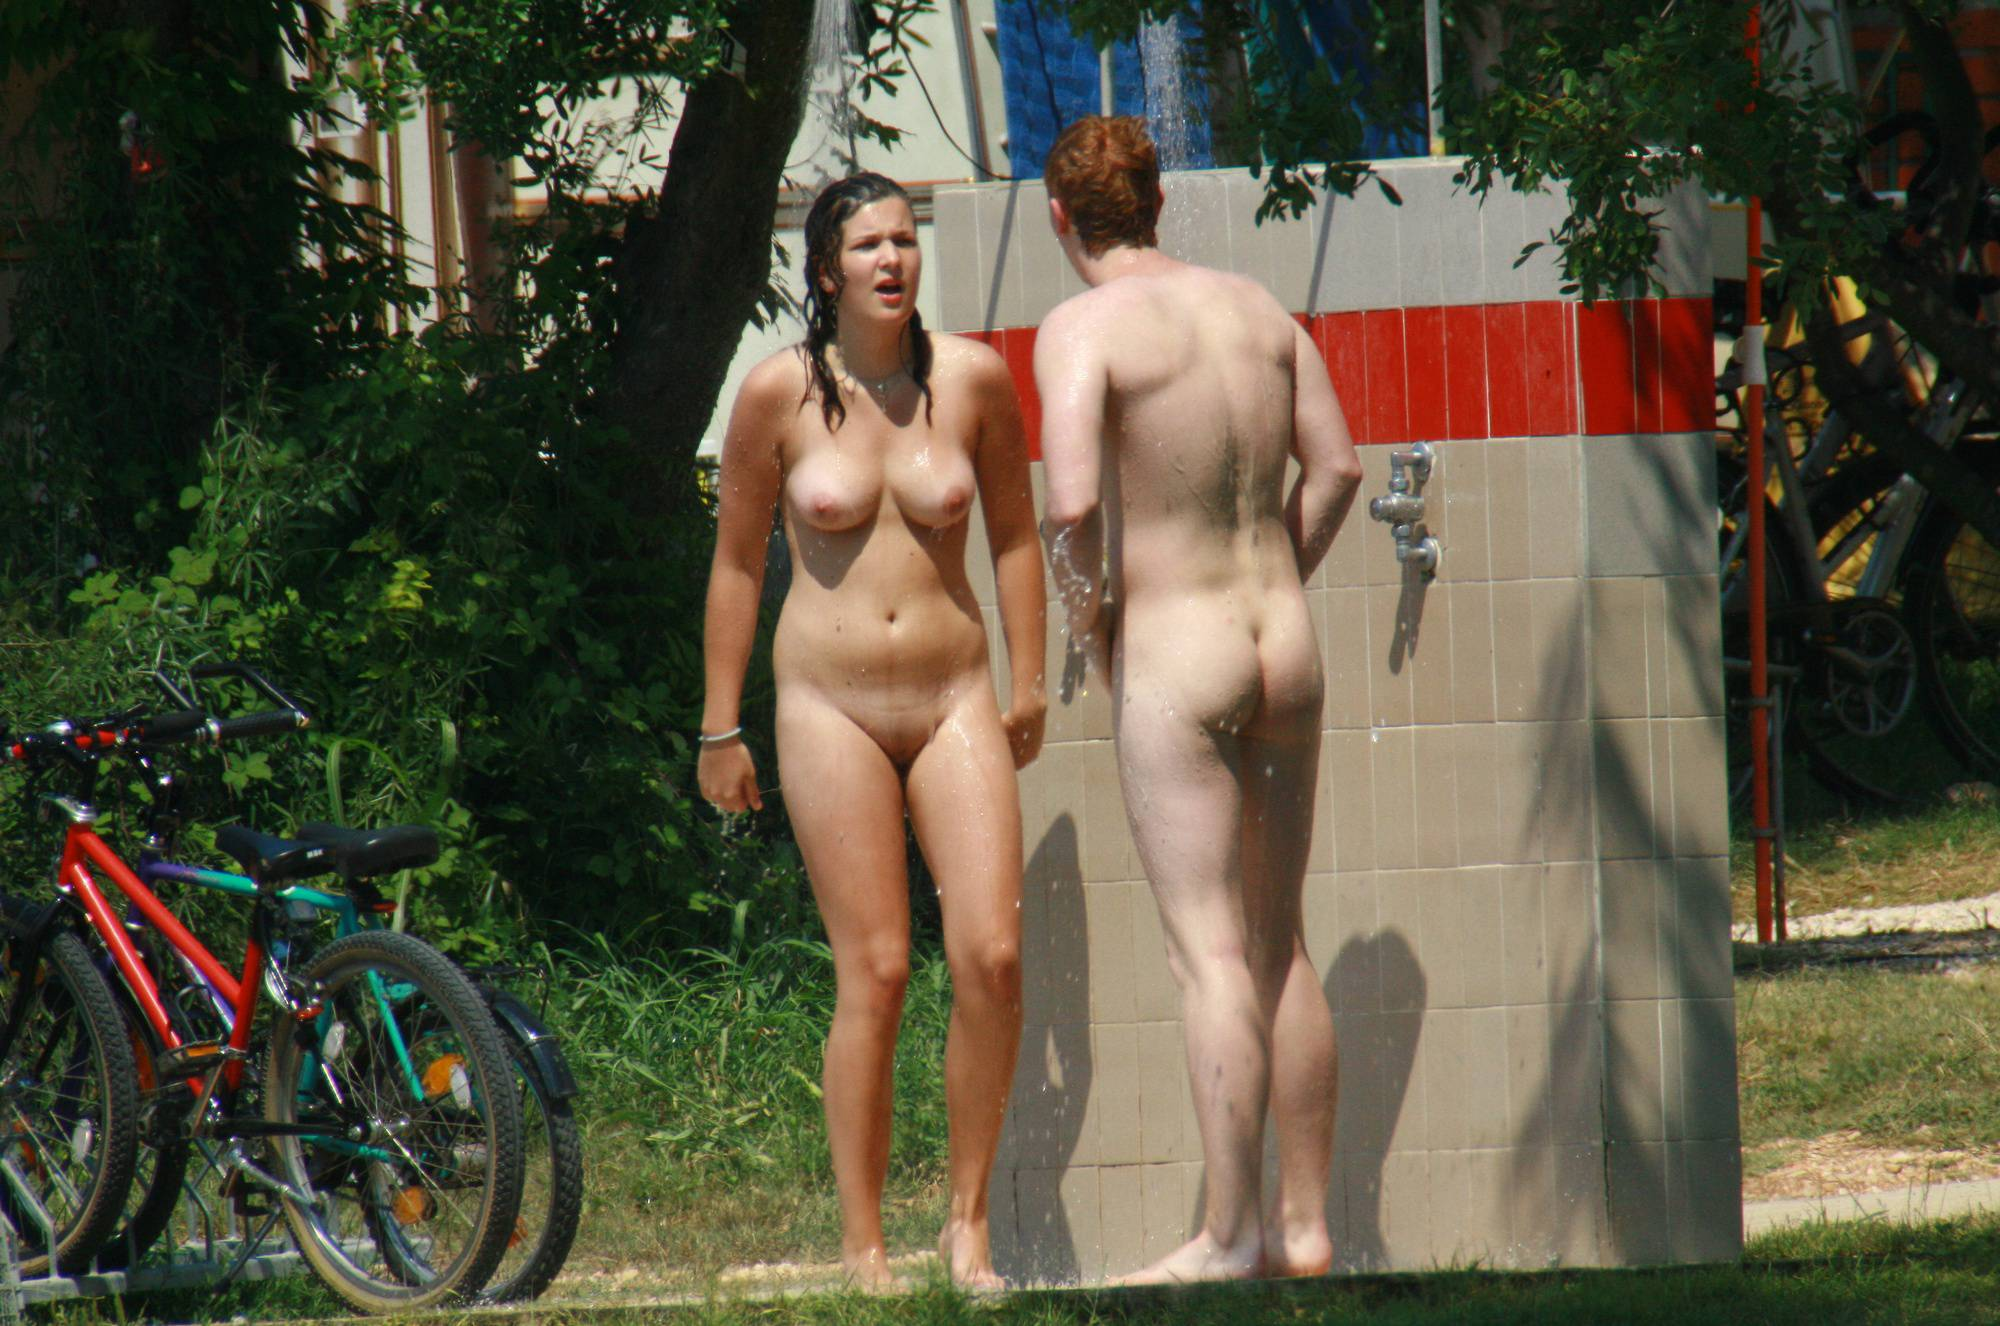 Nudist Pics Red-Headed Nudist Couple - 1